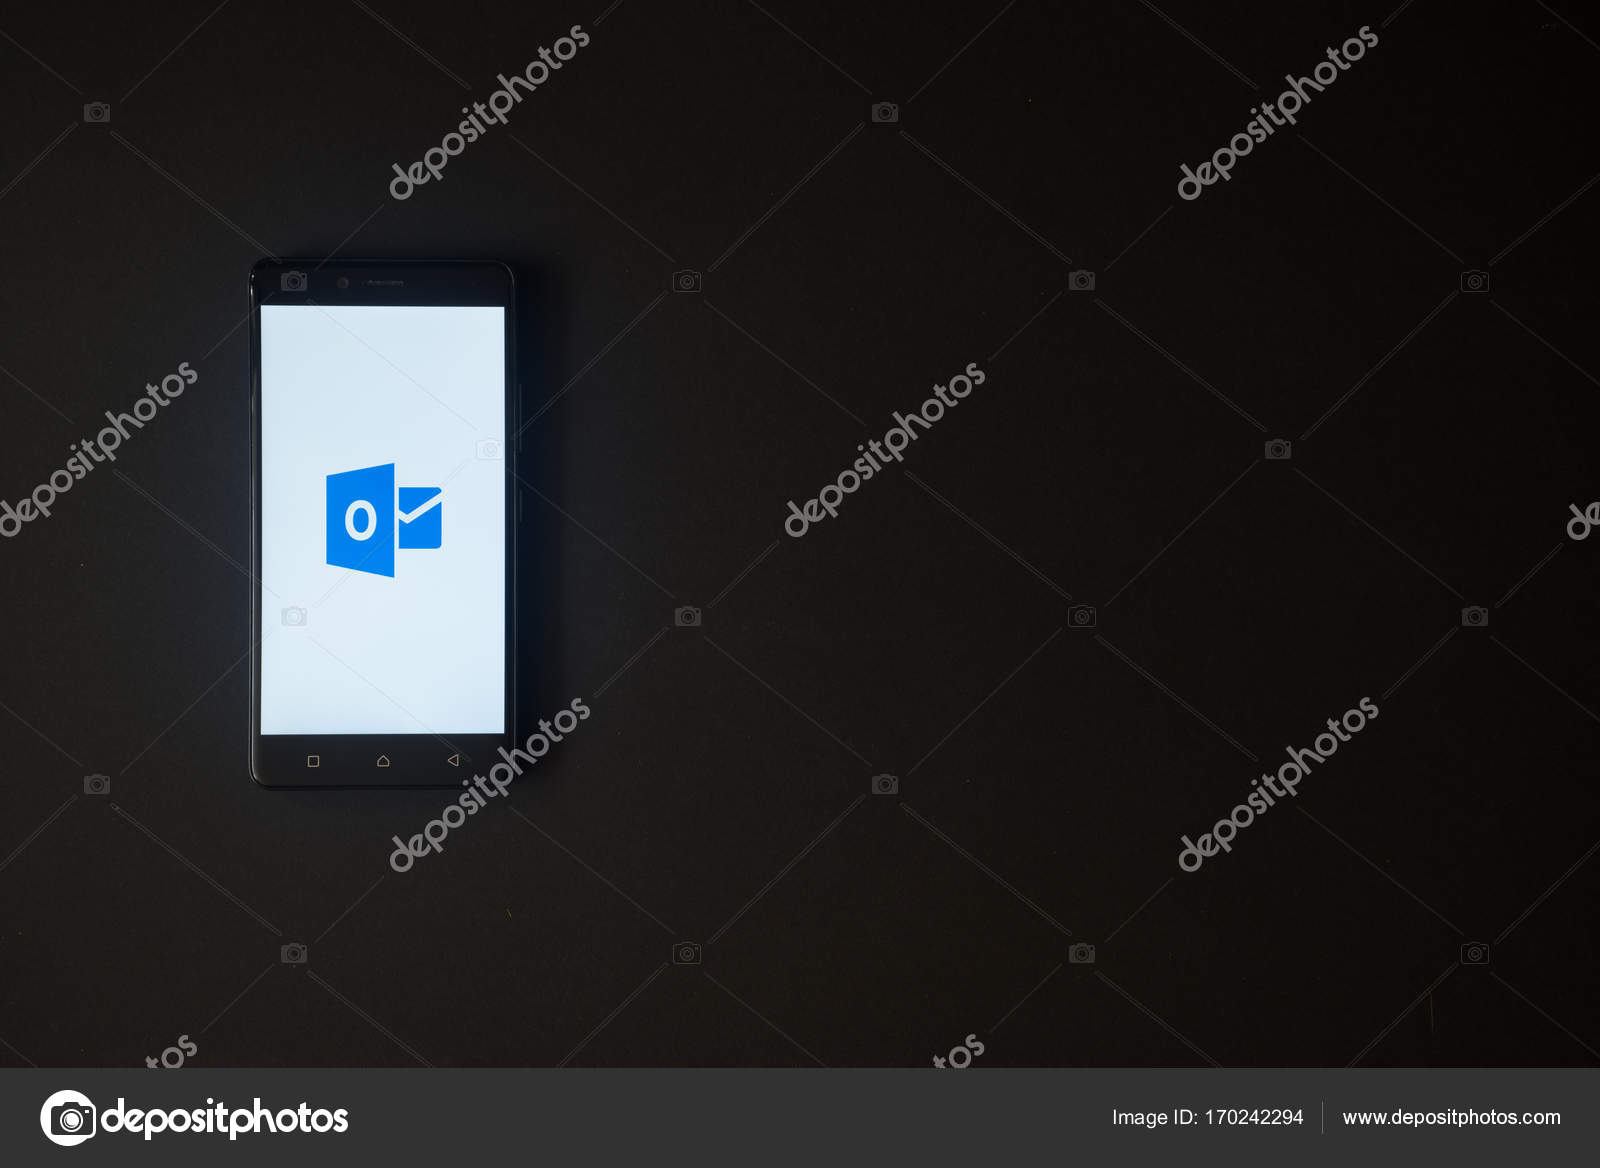 Microsoft Office Outlook Logo On Smartphone Screen On Black